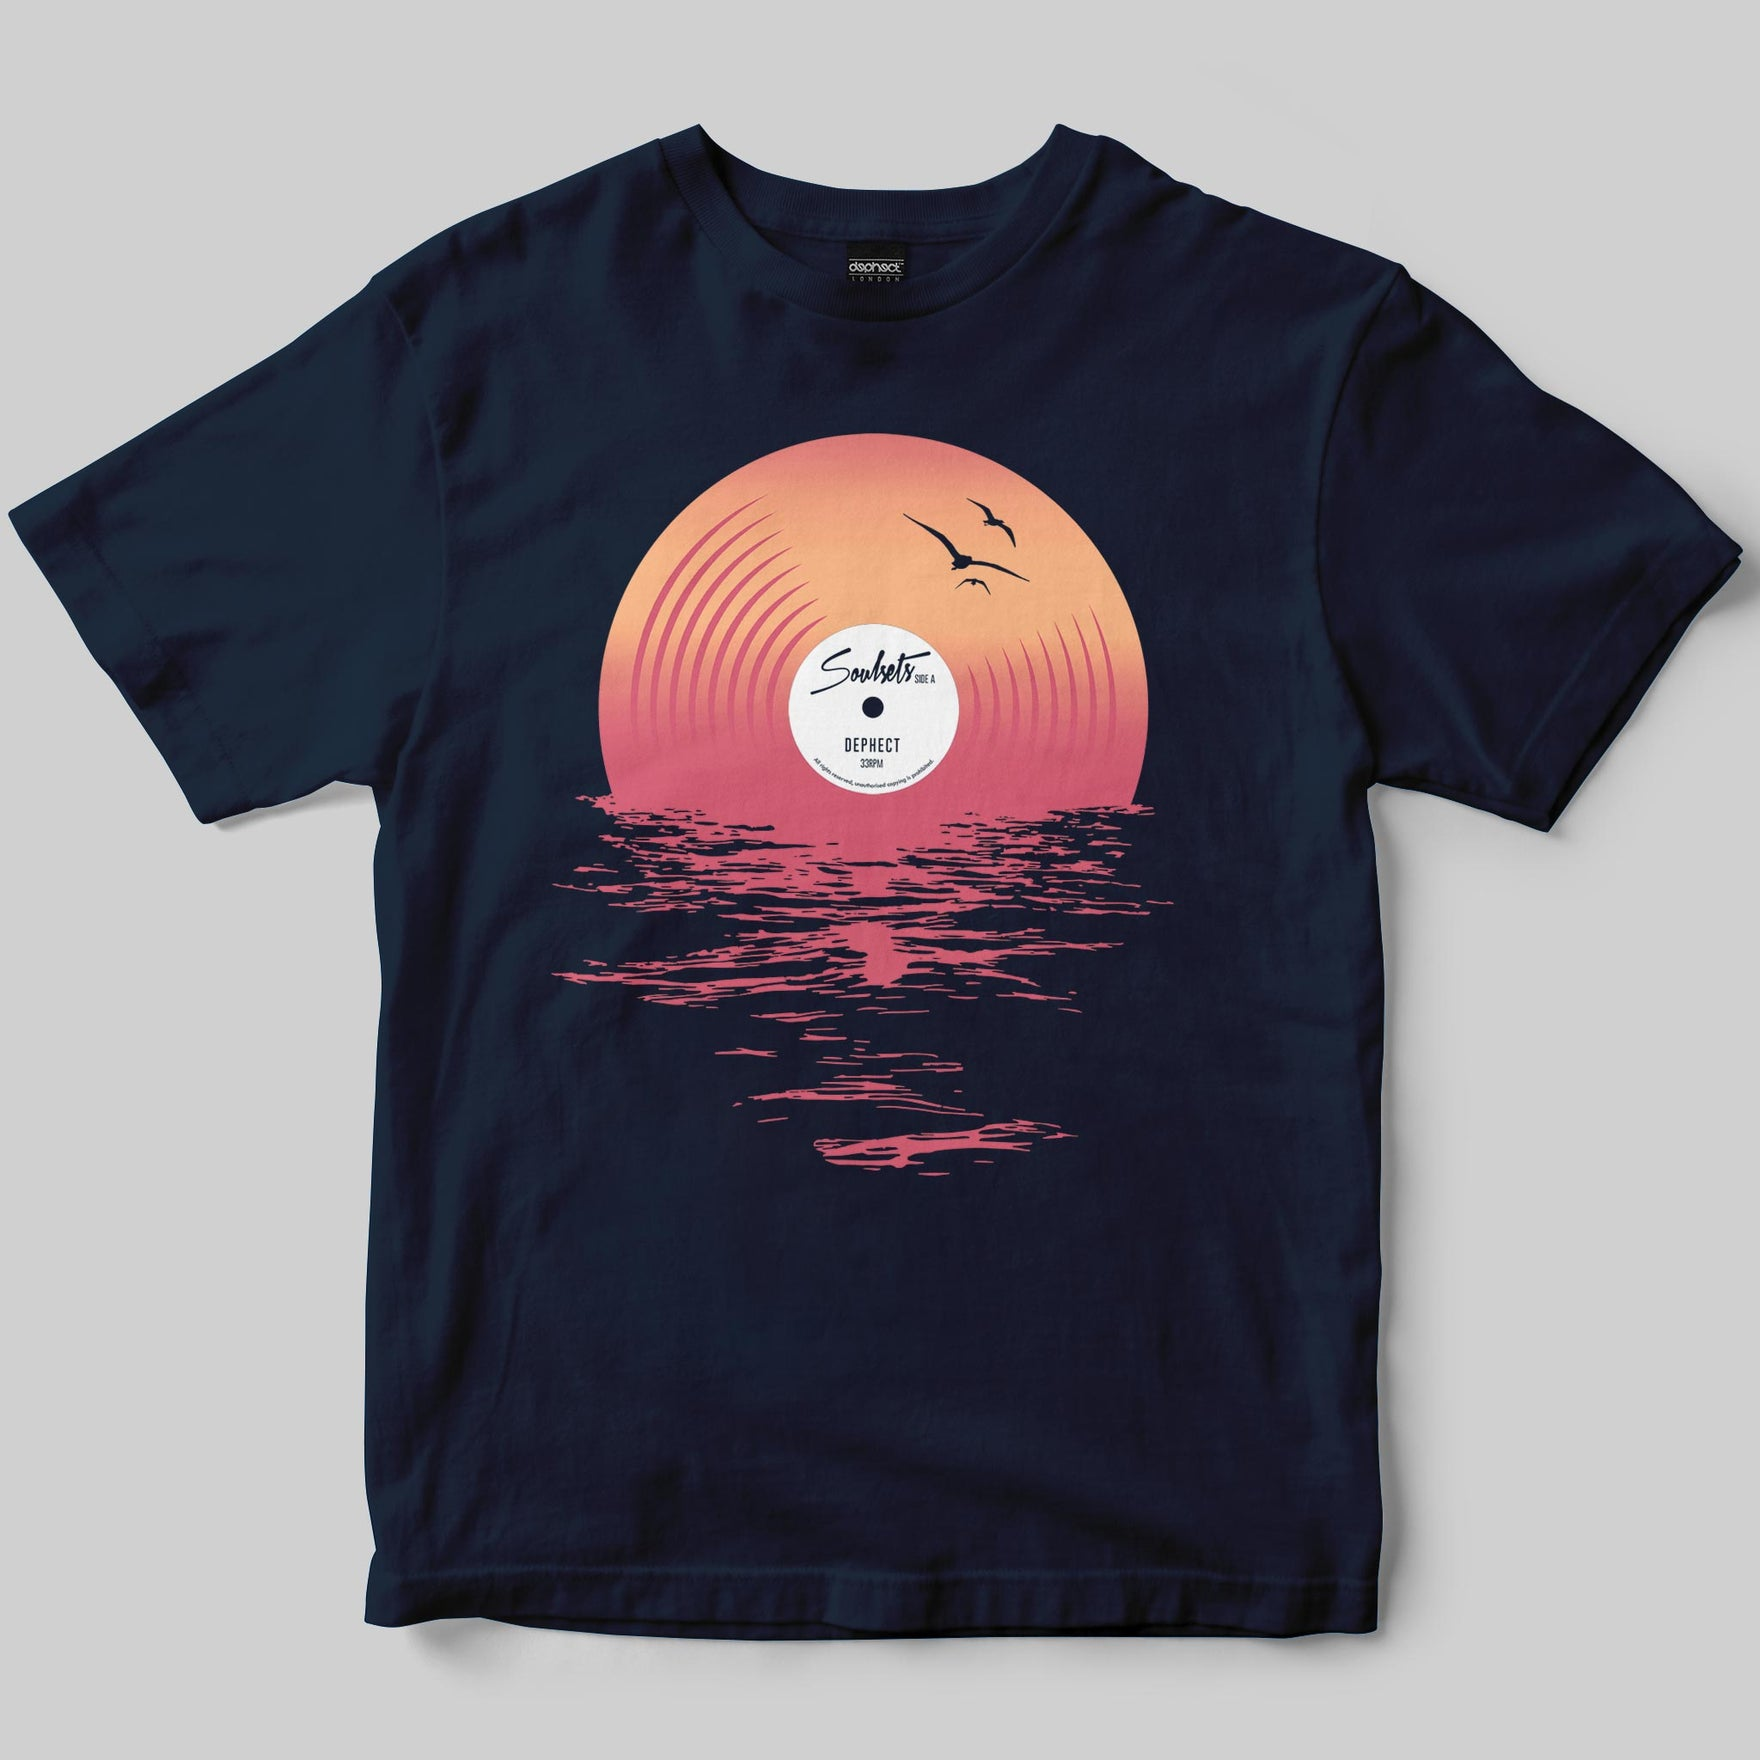 Soulsets T-Shirt / Navy / by Matt Drane